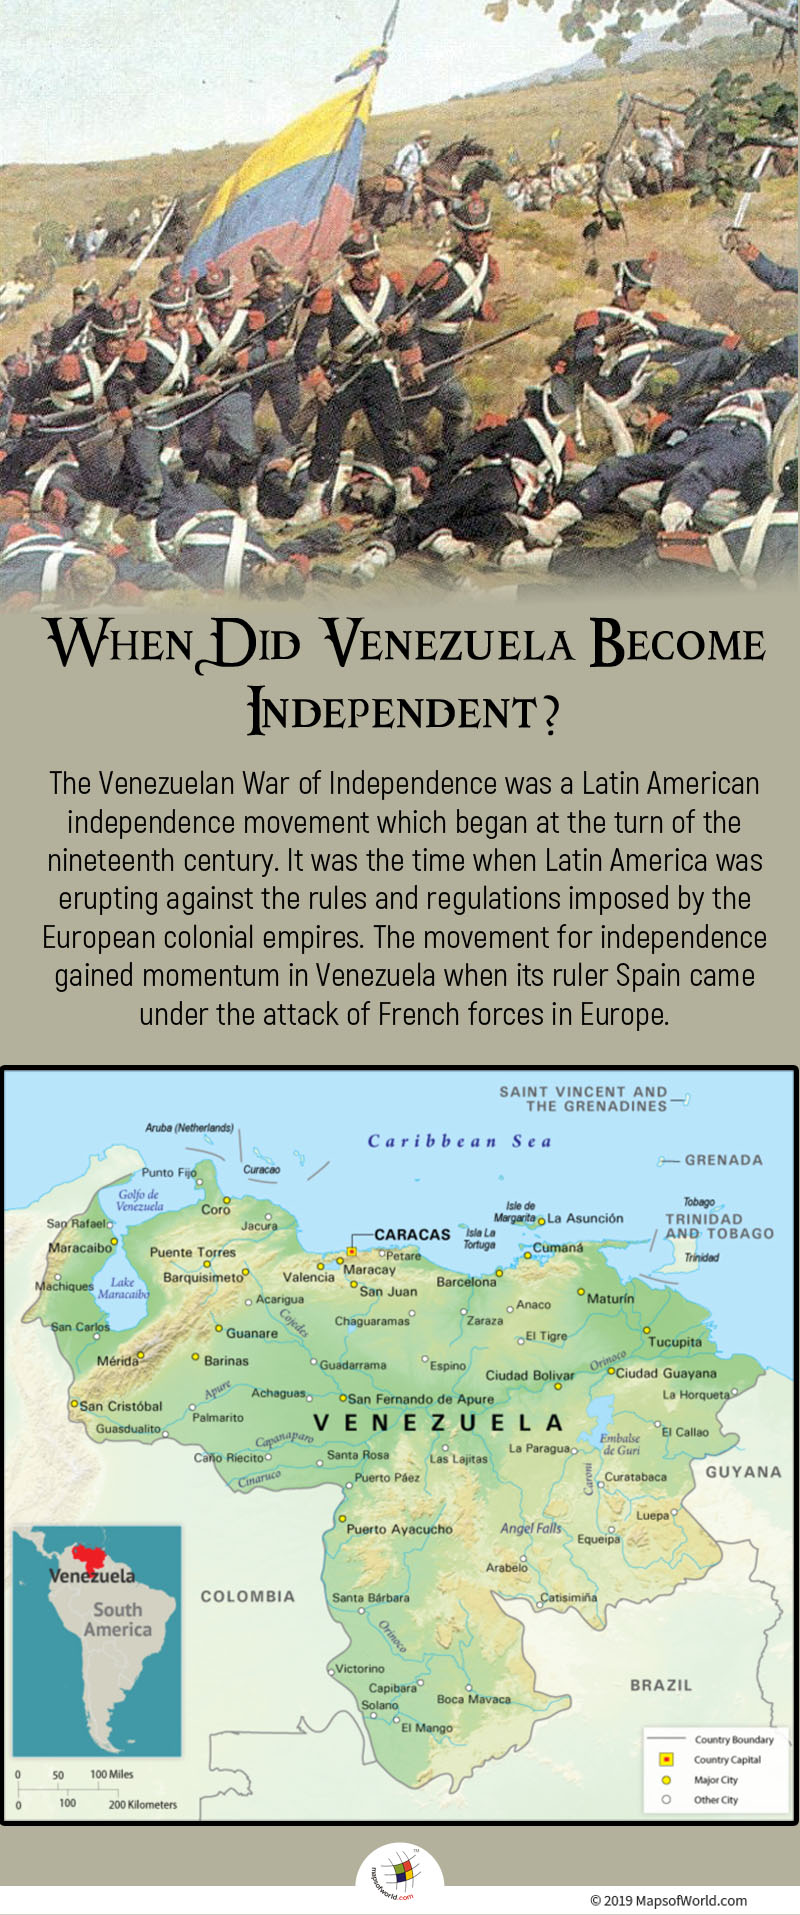 The Venezuelan War of Independence